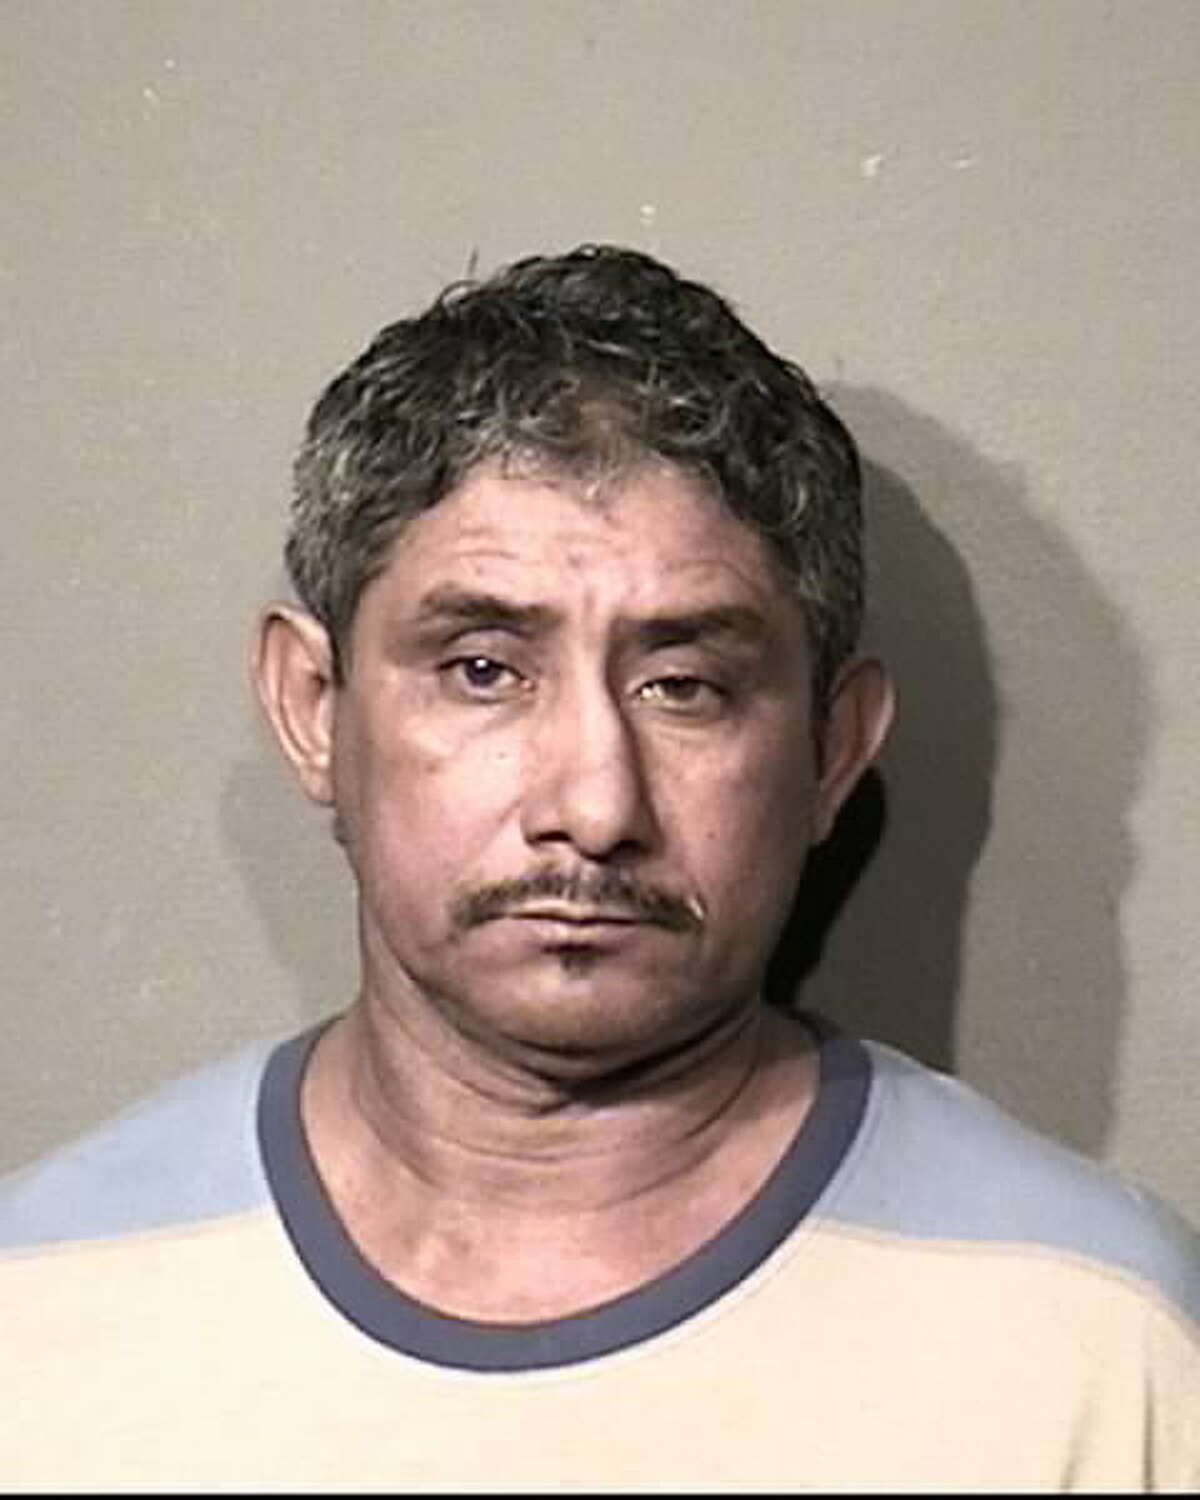 Jose Turcios was arrested in January 2017on a third charge of DWI.